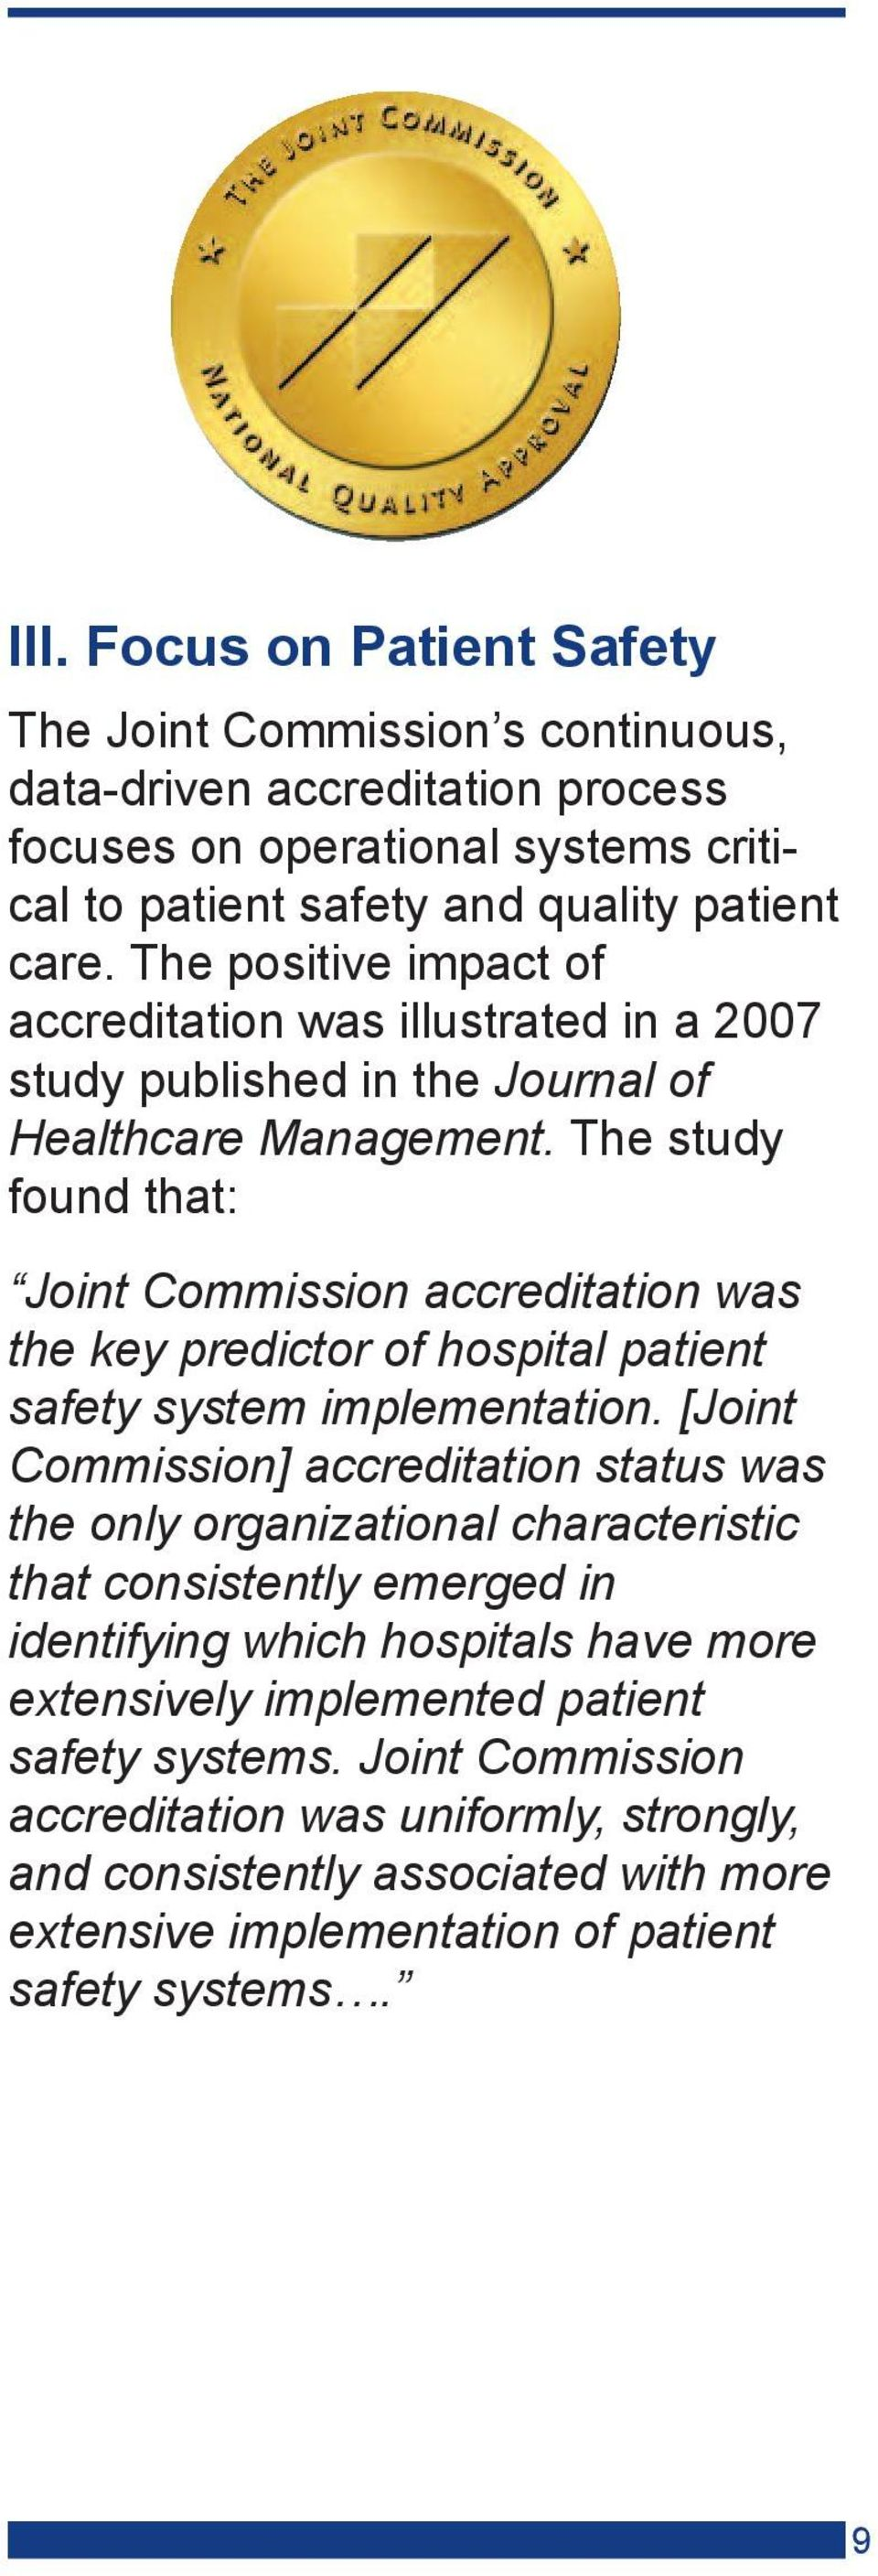 The study found that: Joint Commission accreditation was the key predictor of hospital patient safety system implementation.